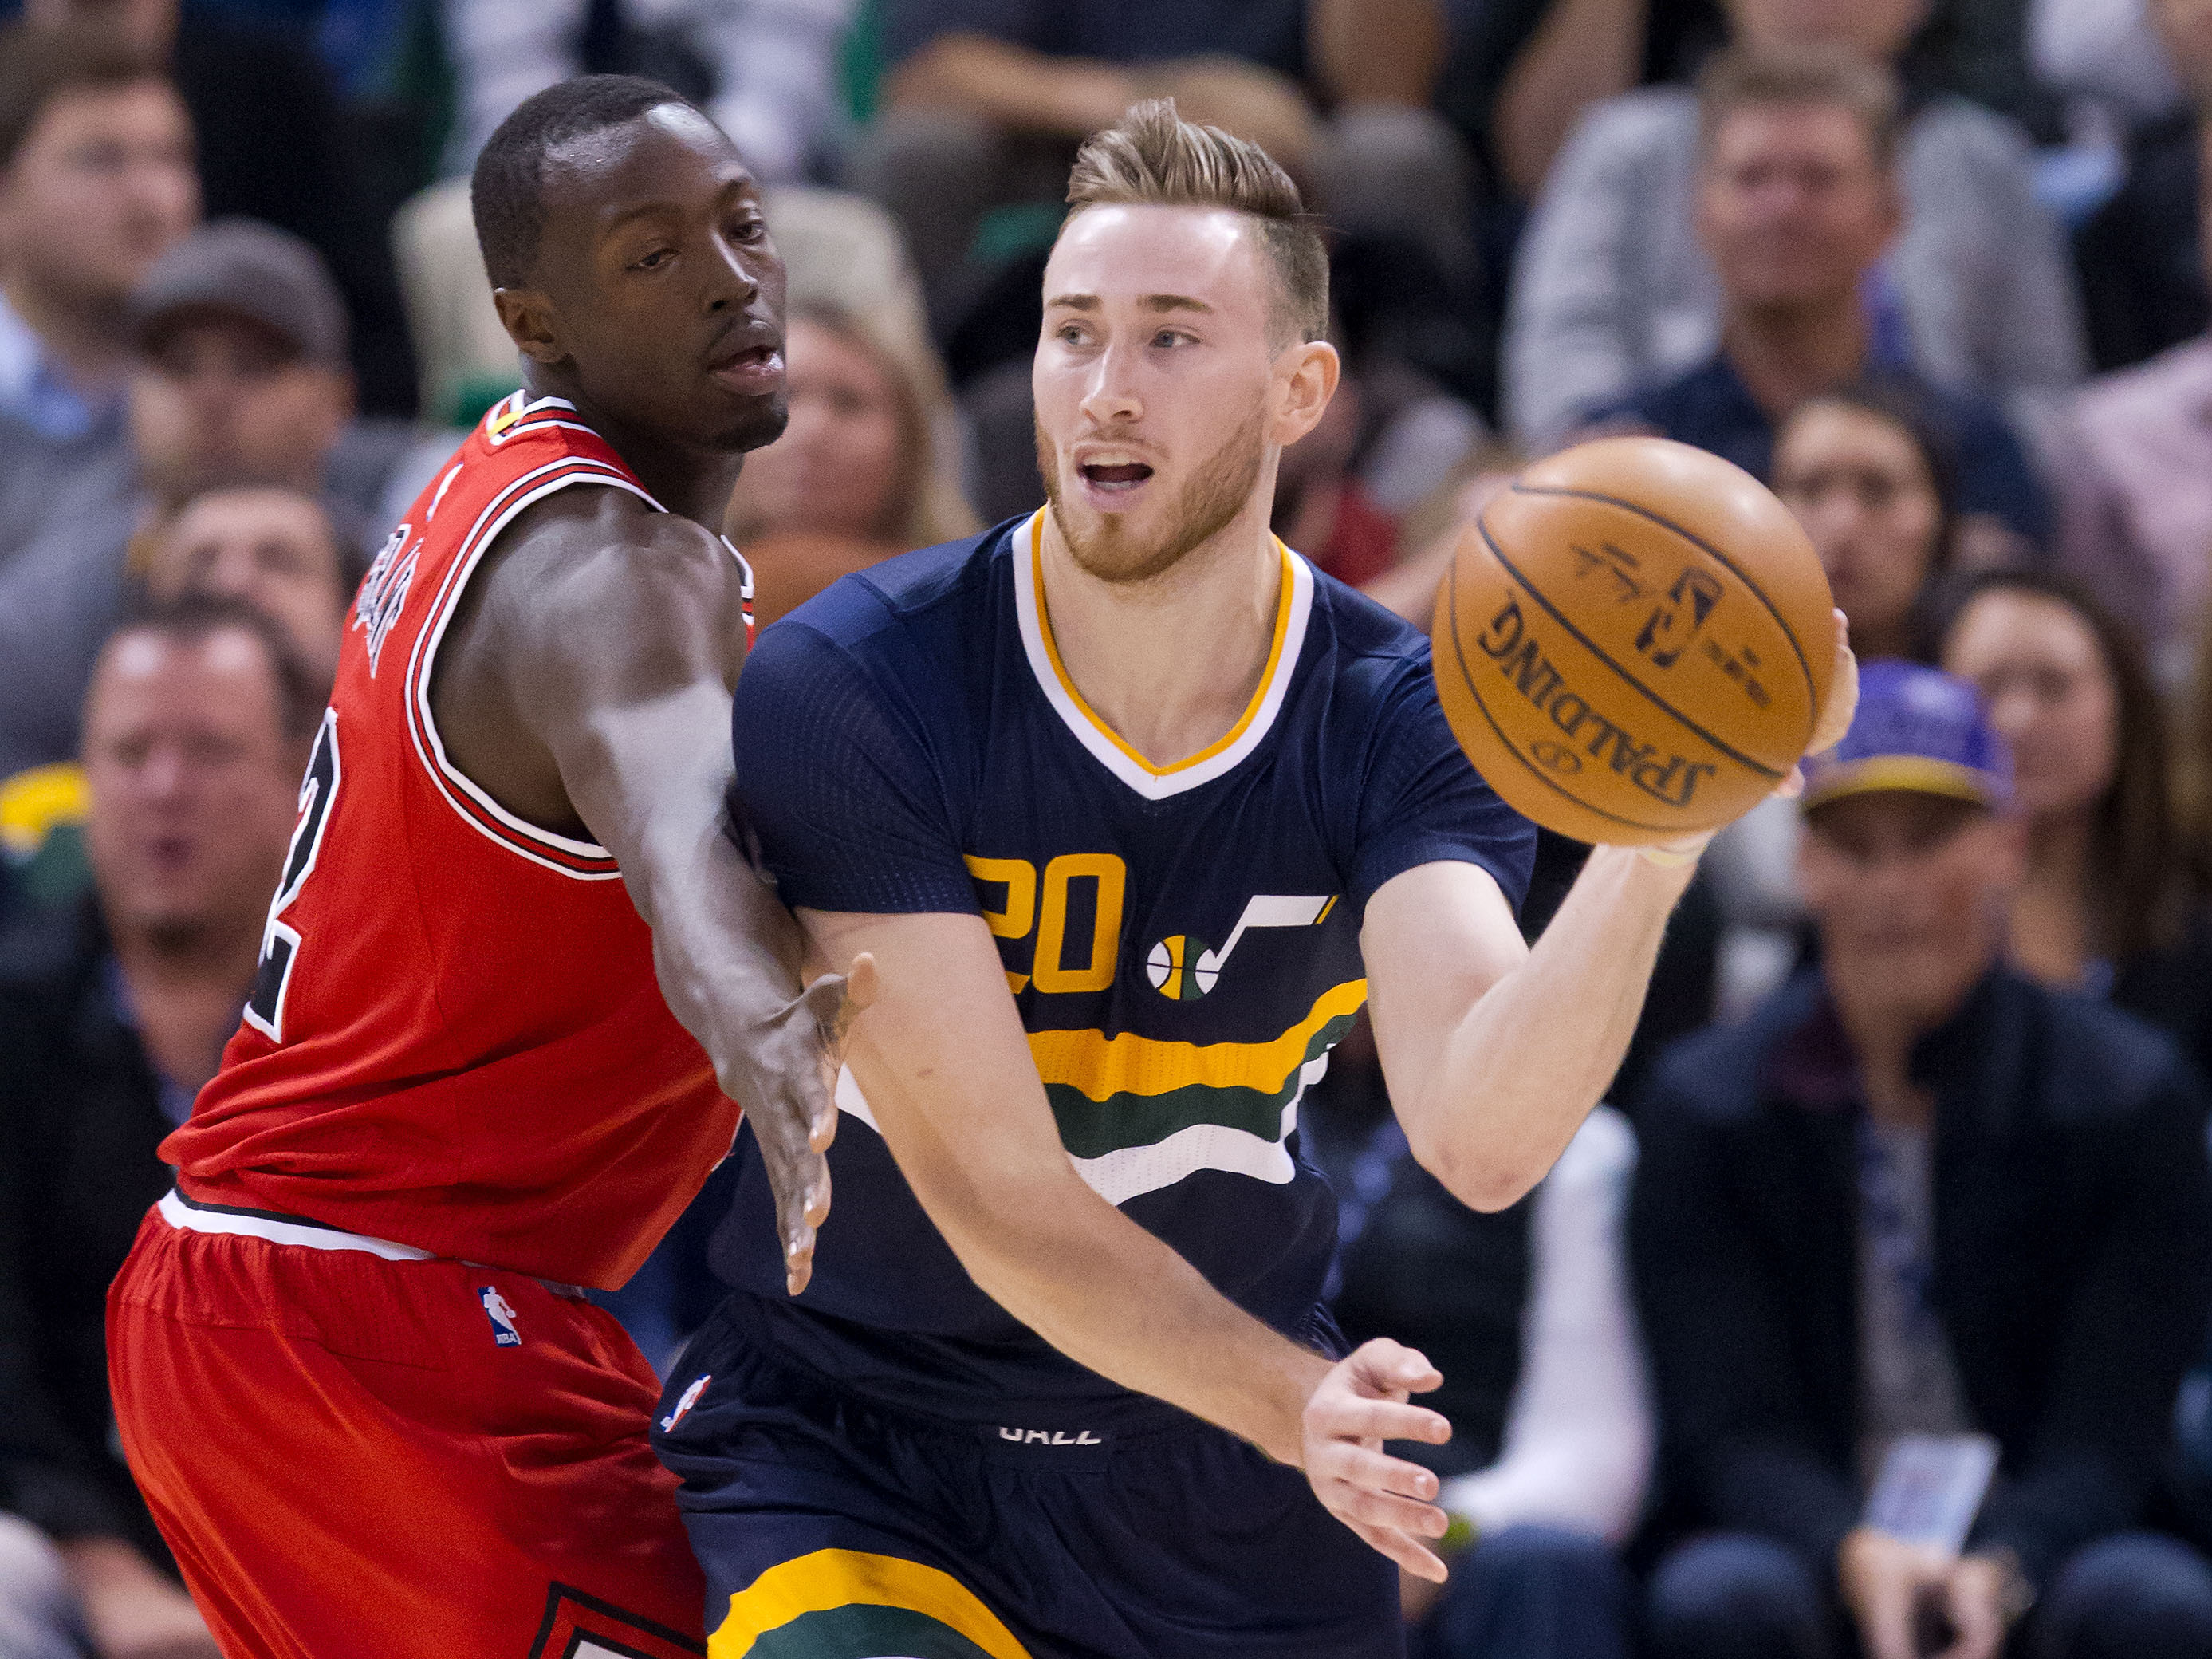 Bulls victorious over Jazz, 95-86